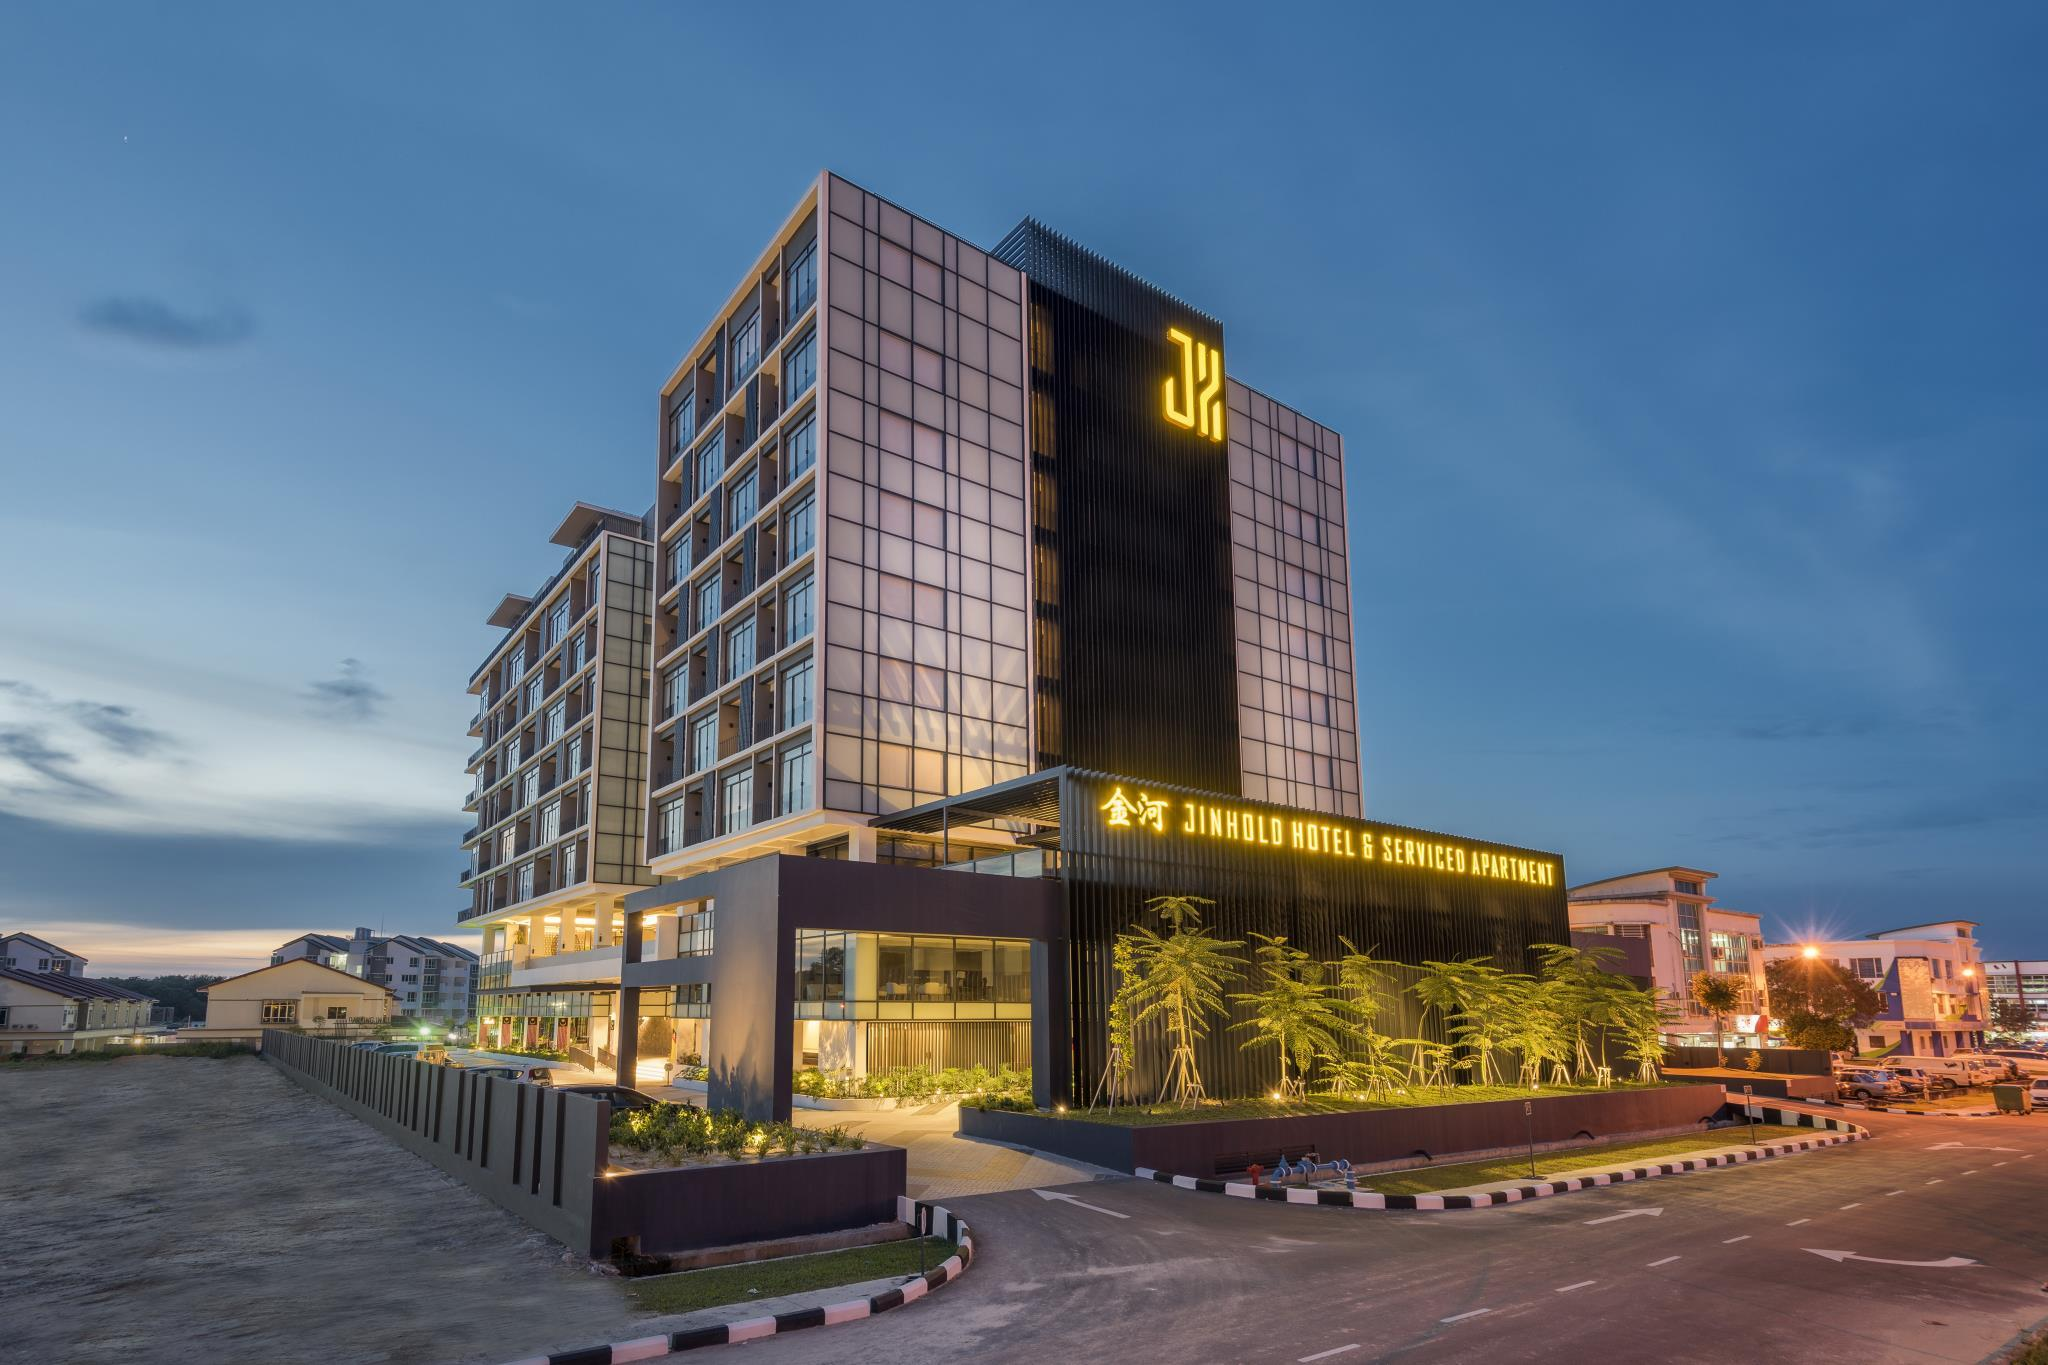 Jinhold Hotel And Serviced Apartment